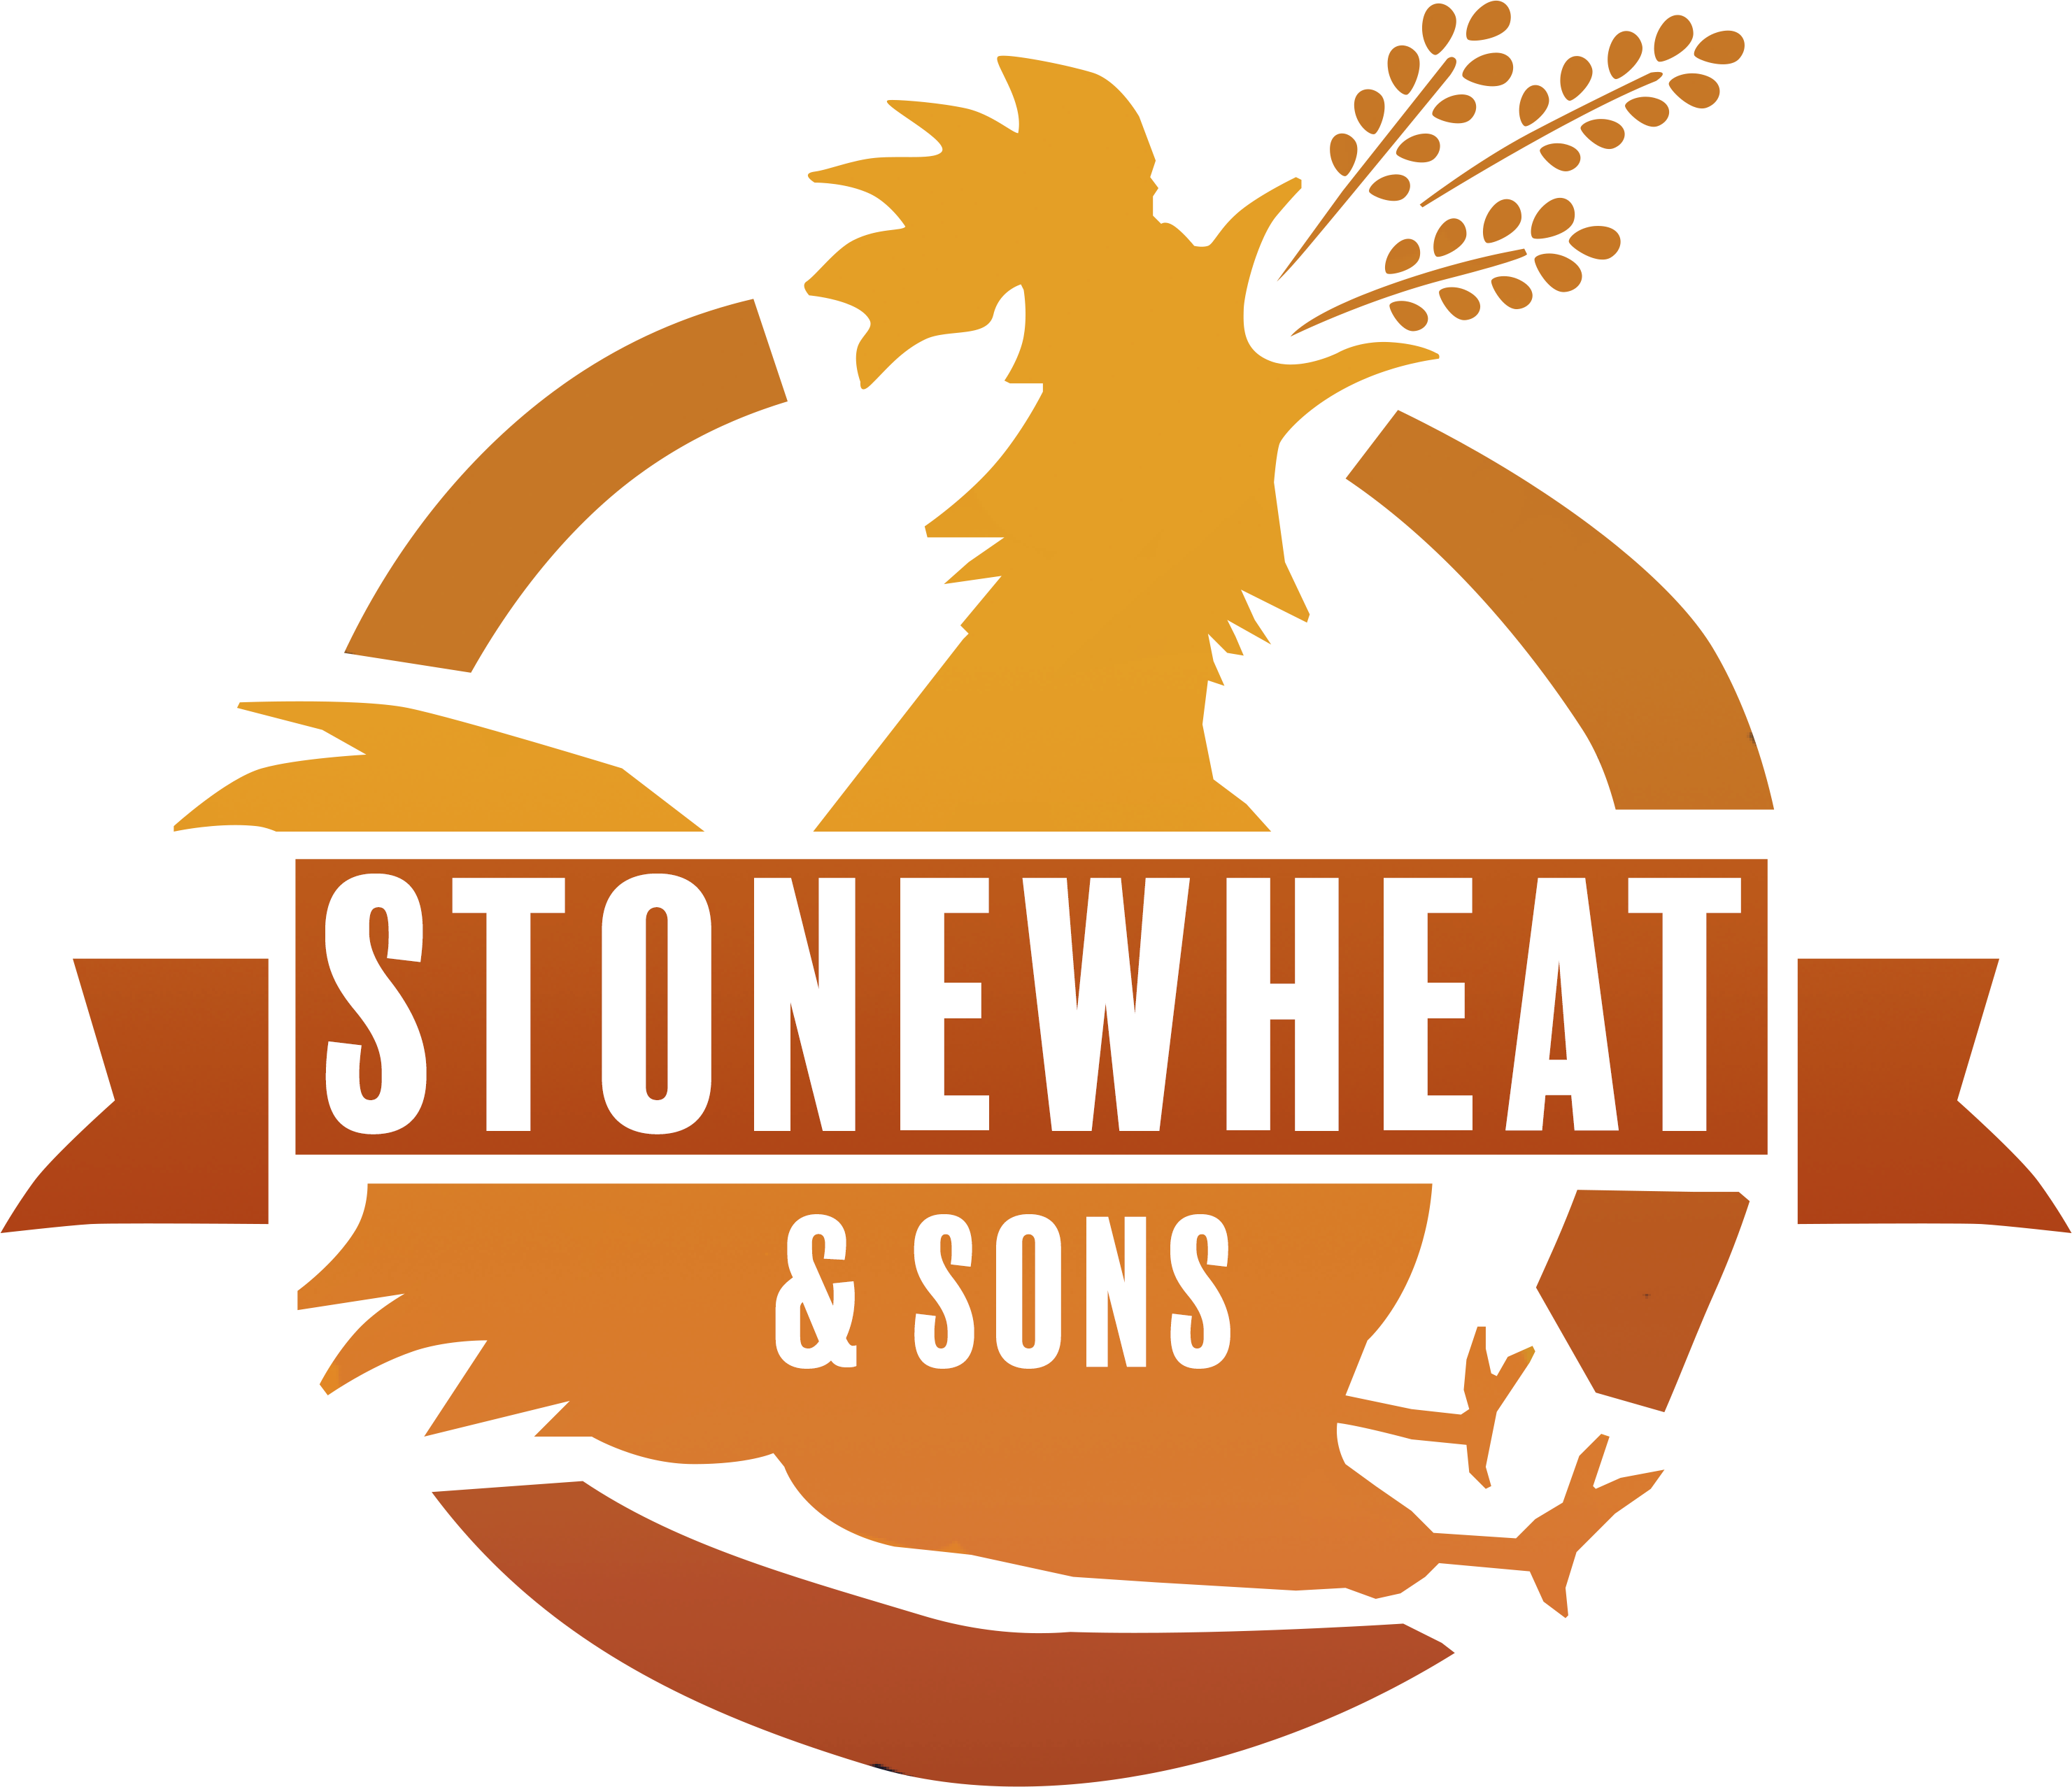 Stonewheat & Sons